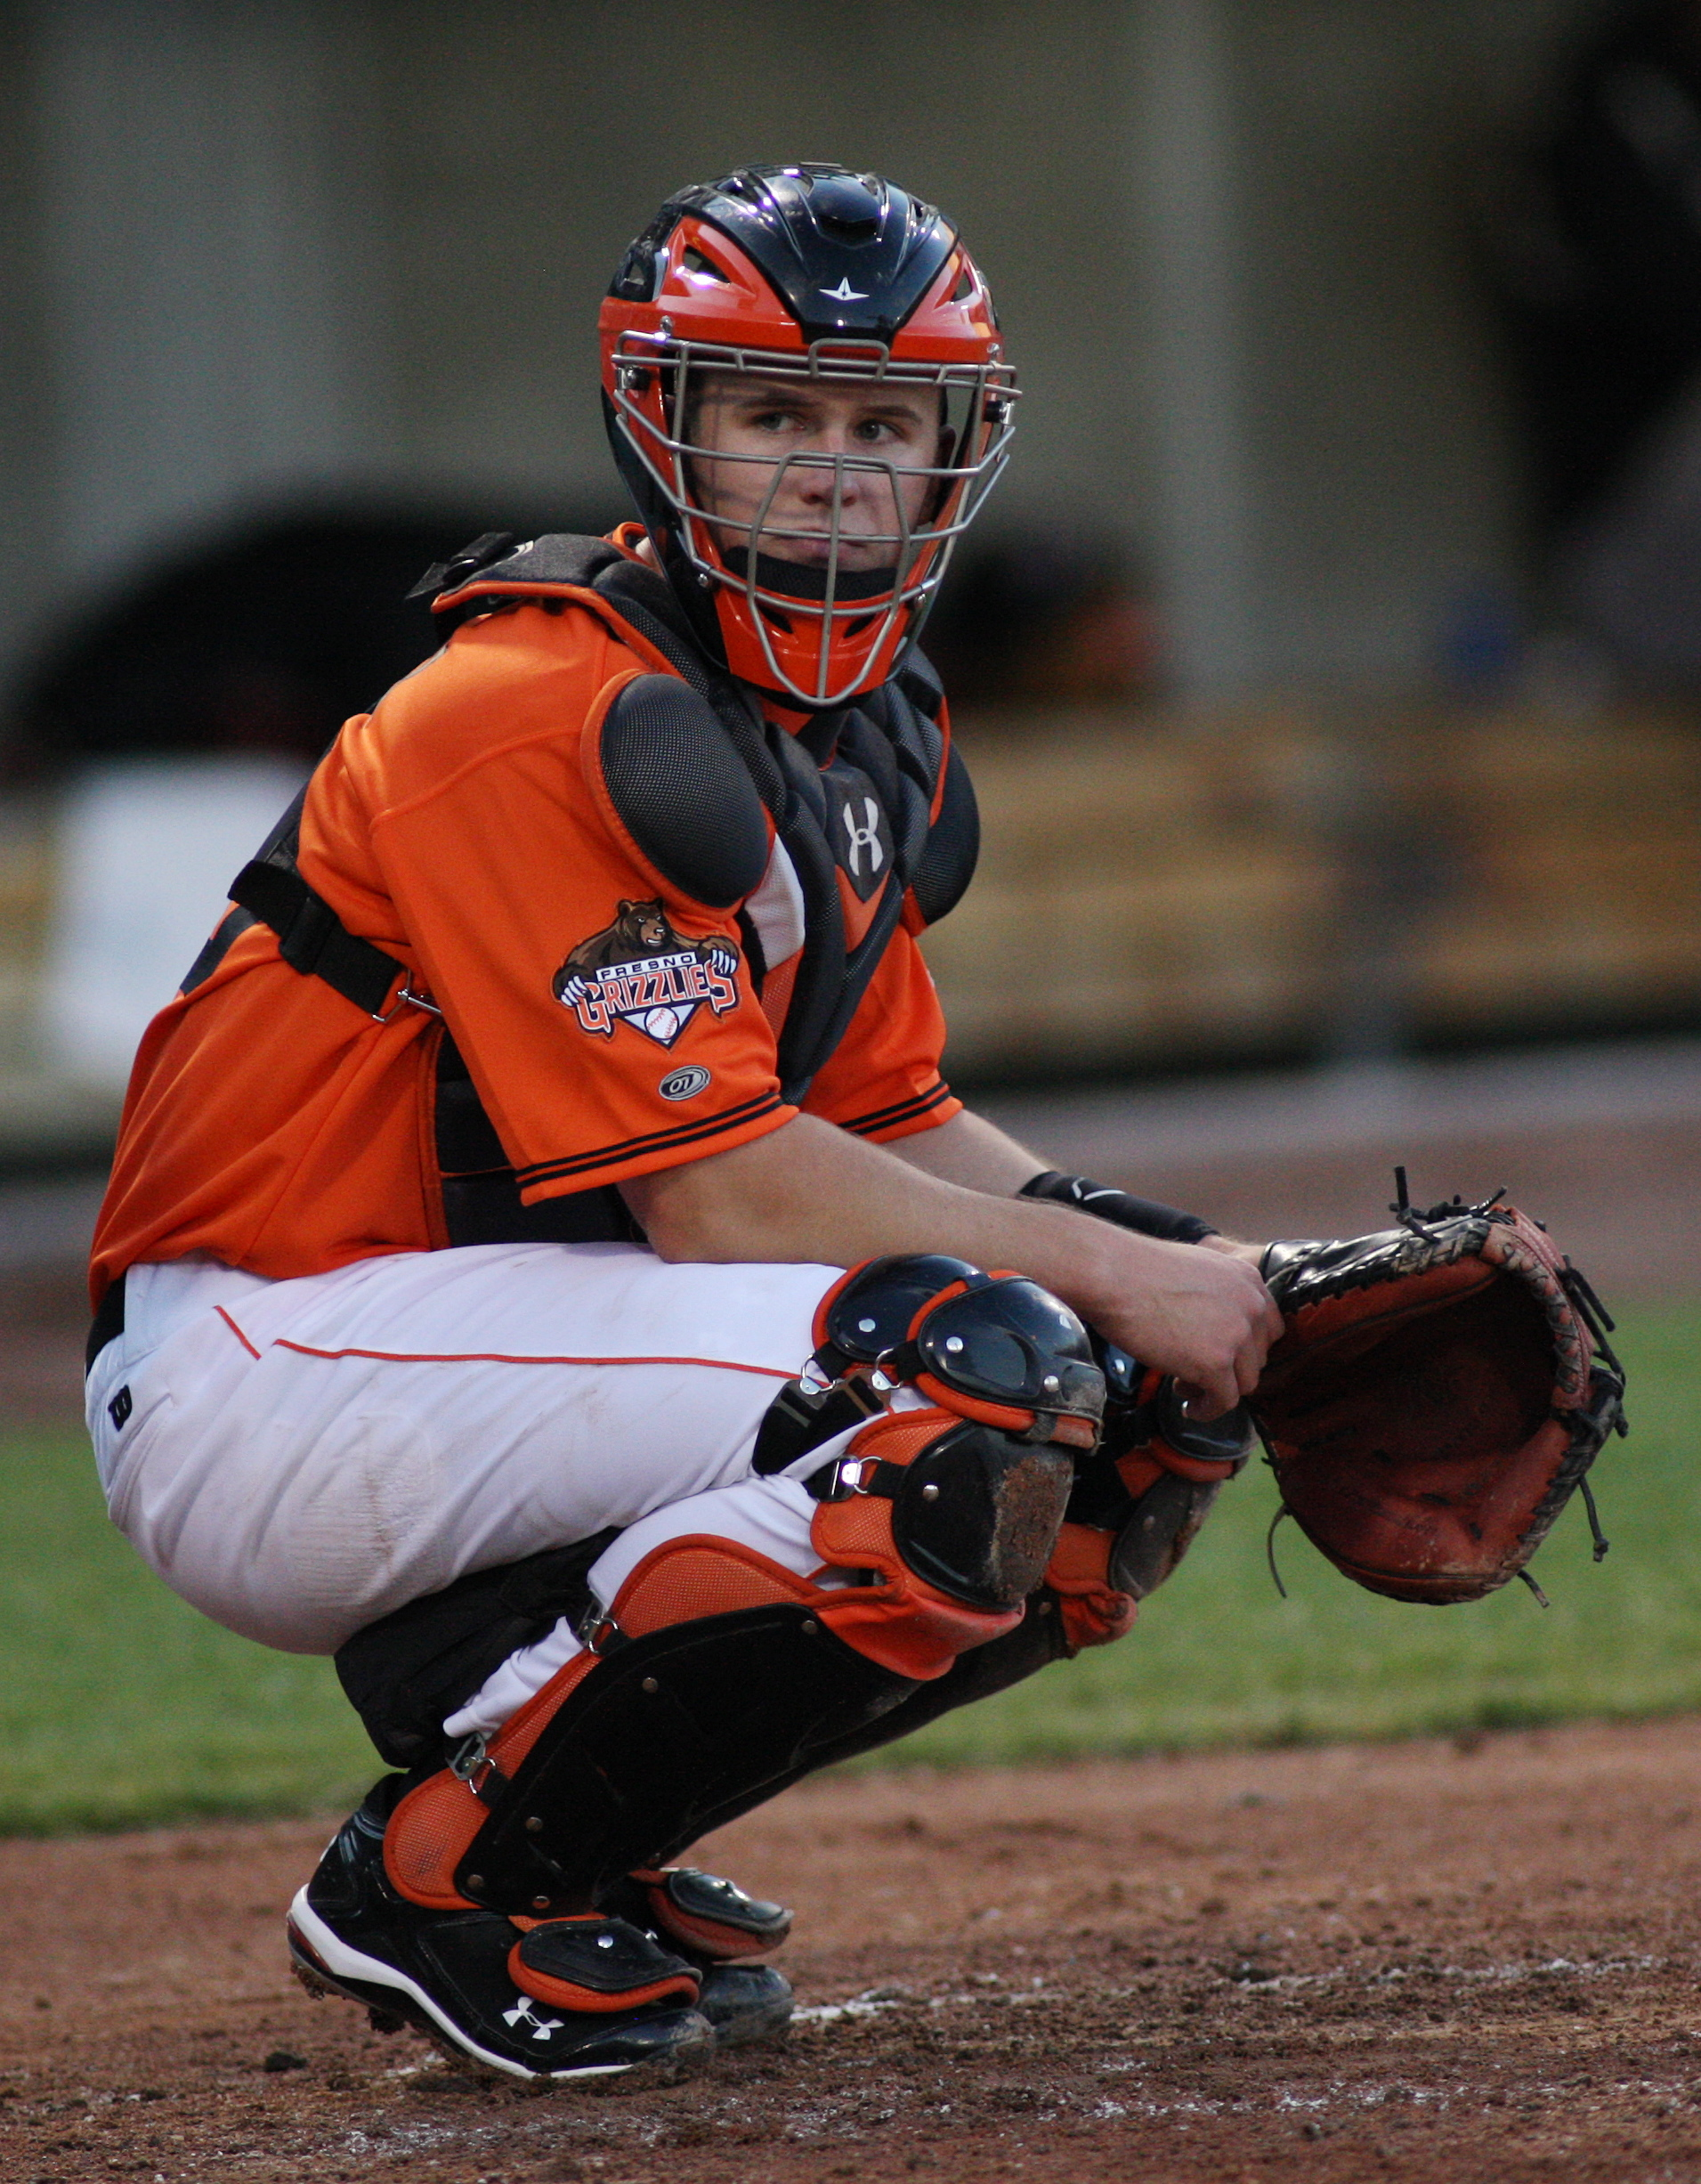 Buster posey catching